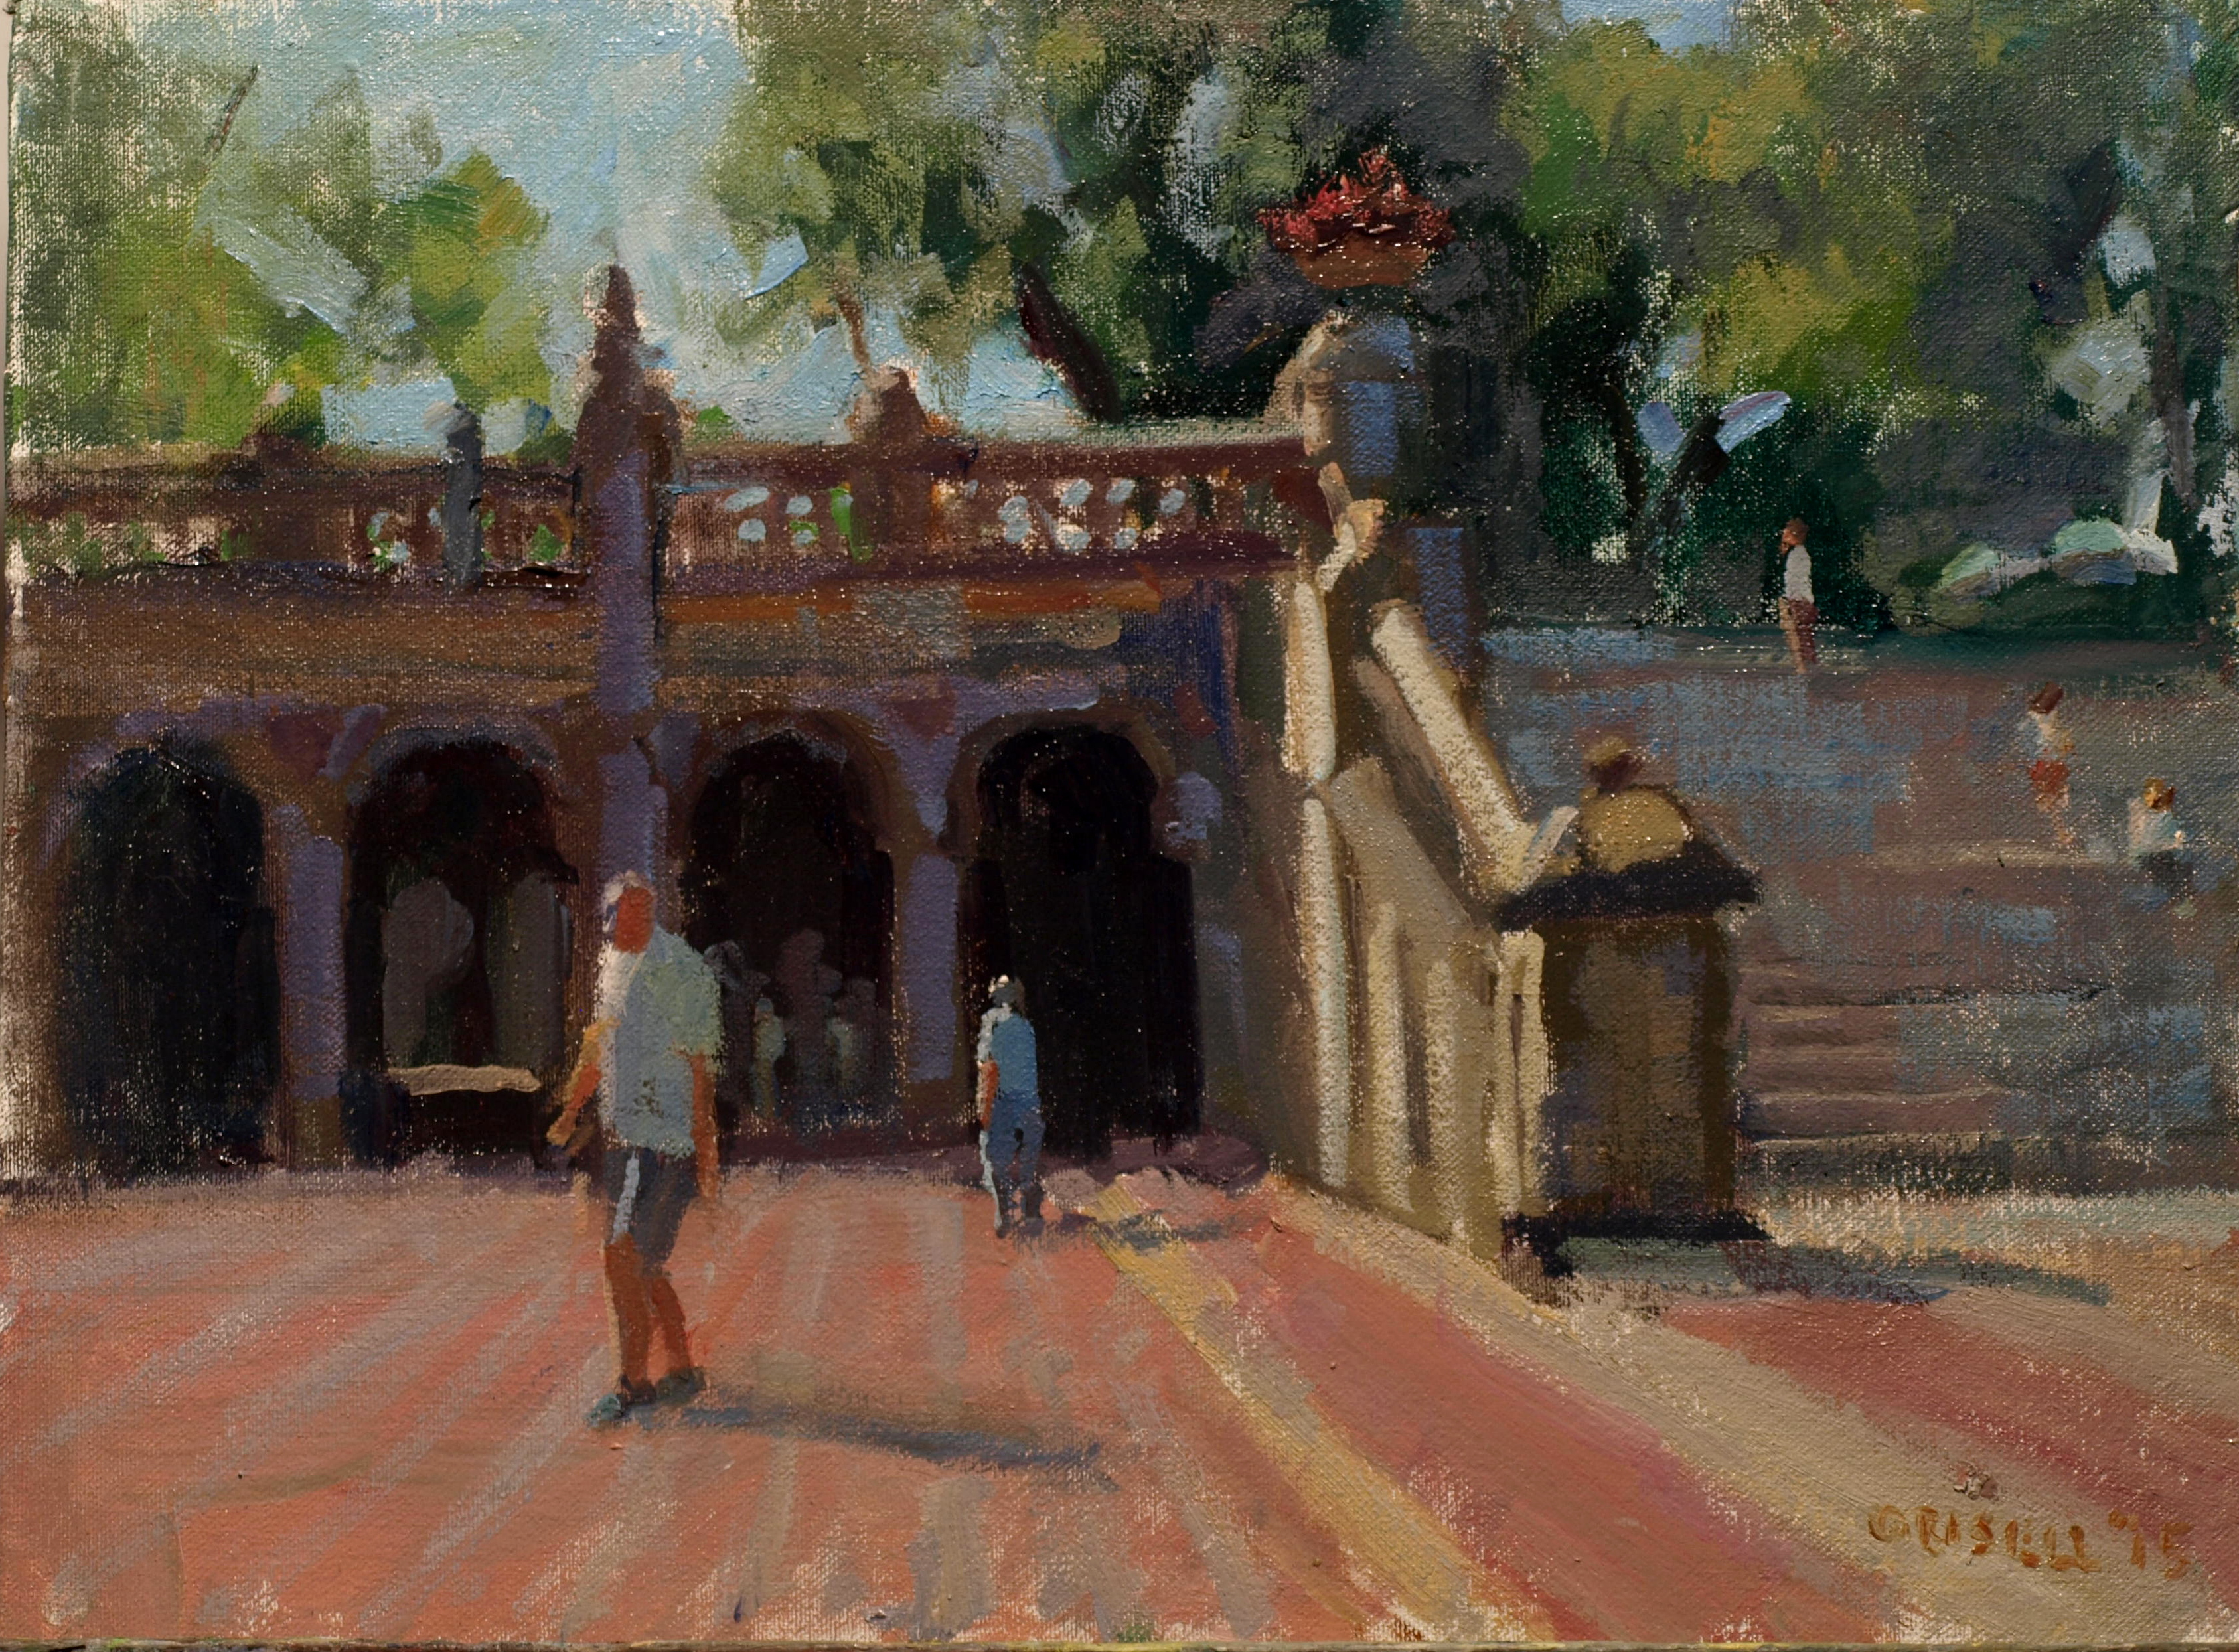 In Central Park, Oil on Canvas on Panel, 12 x 16 Inches, by Susan Grisell, $300